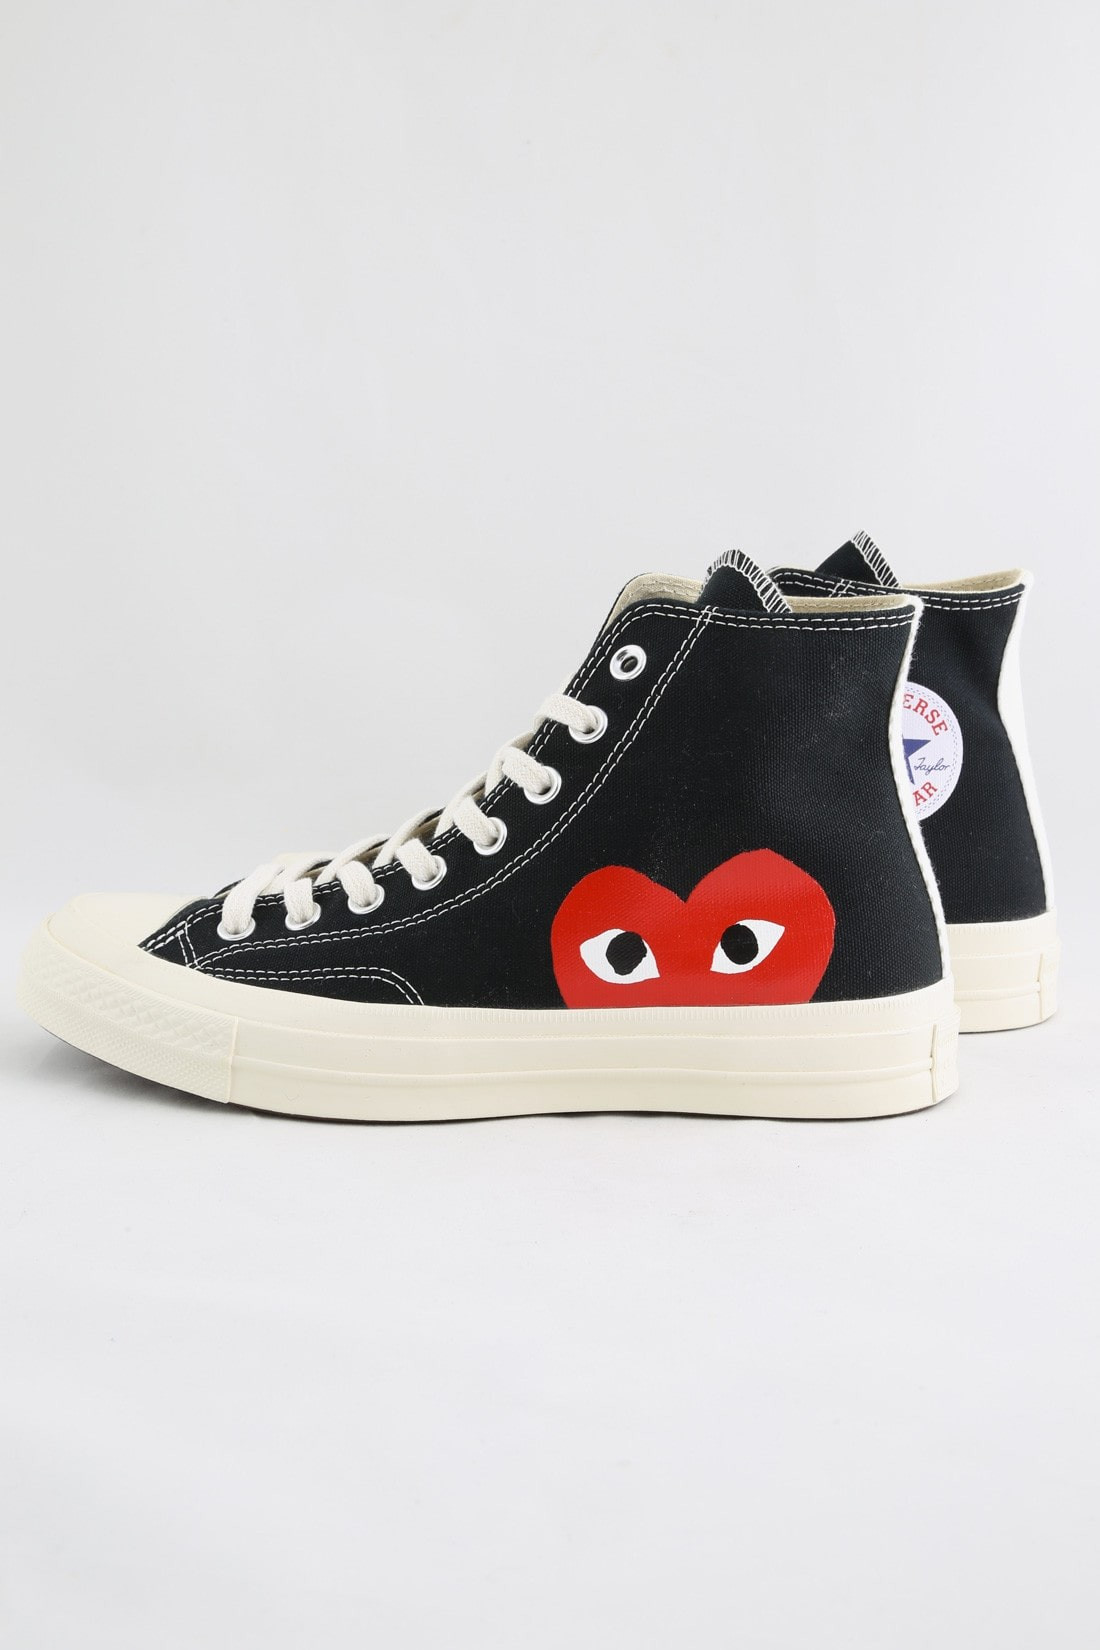 Play new chuck taylor high Black